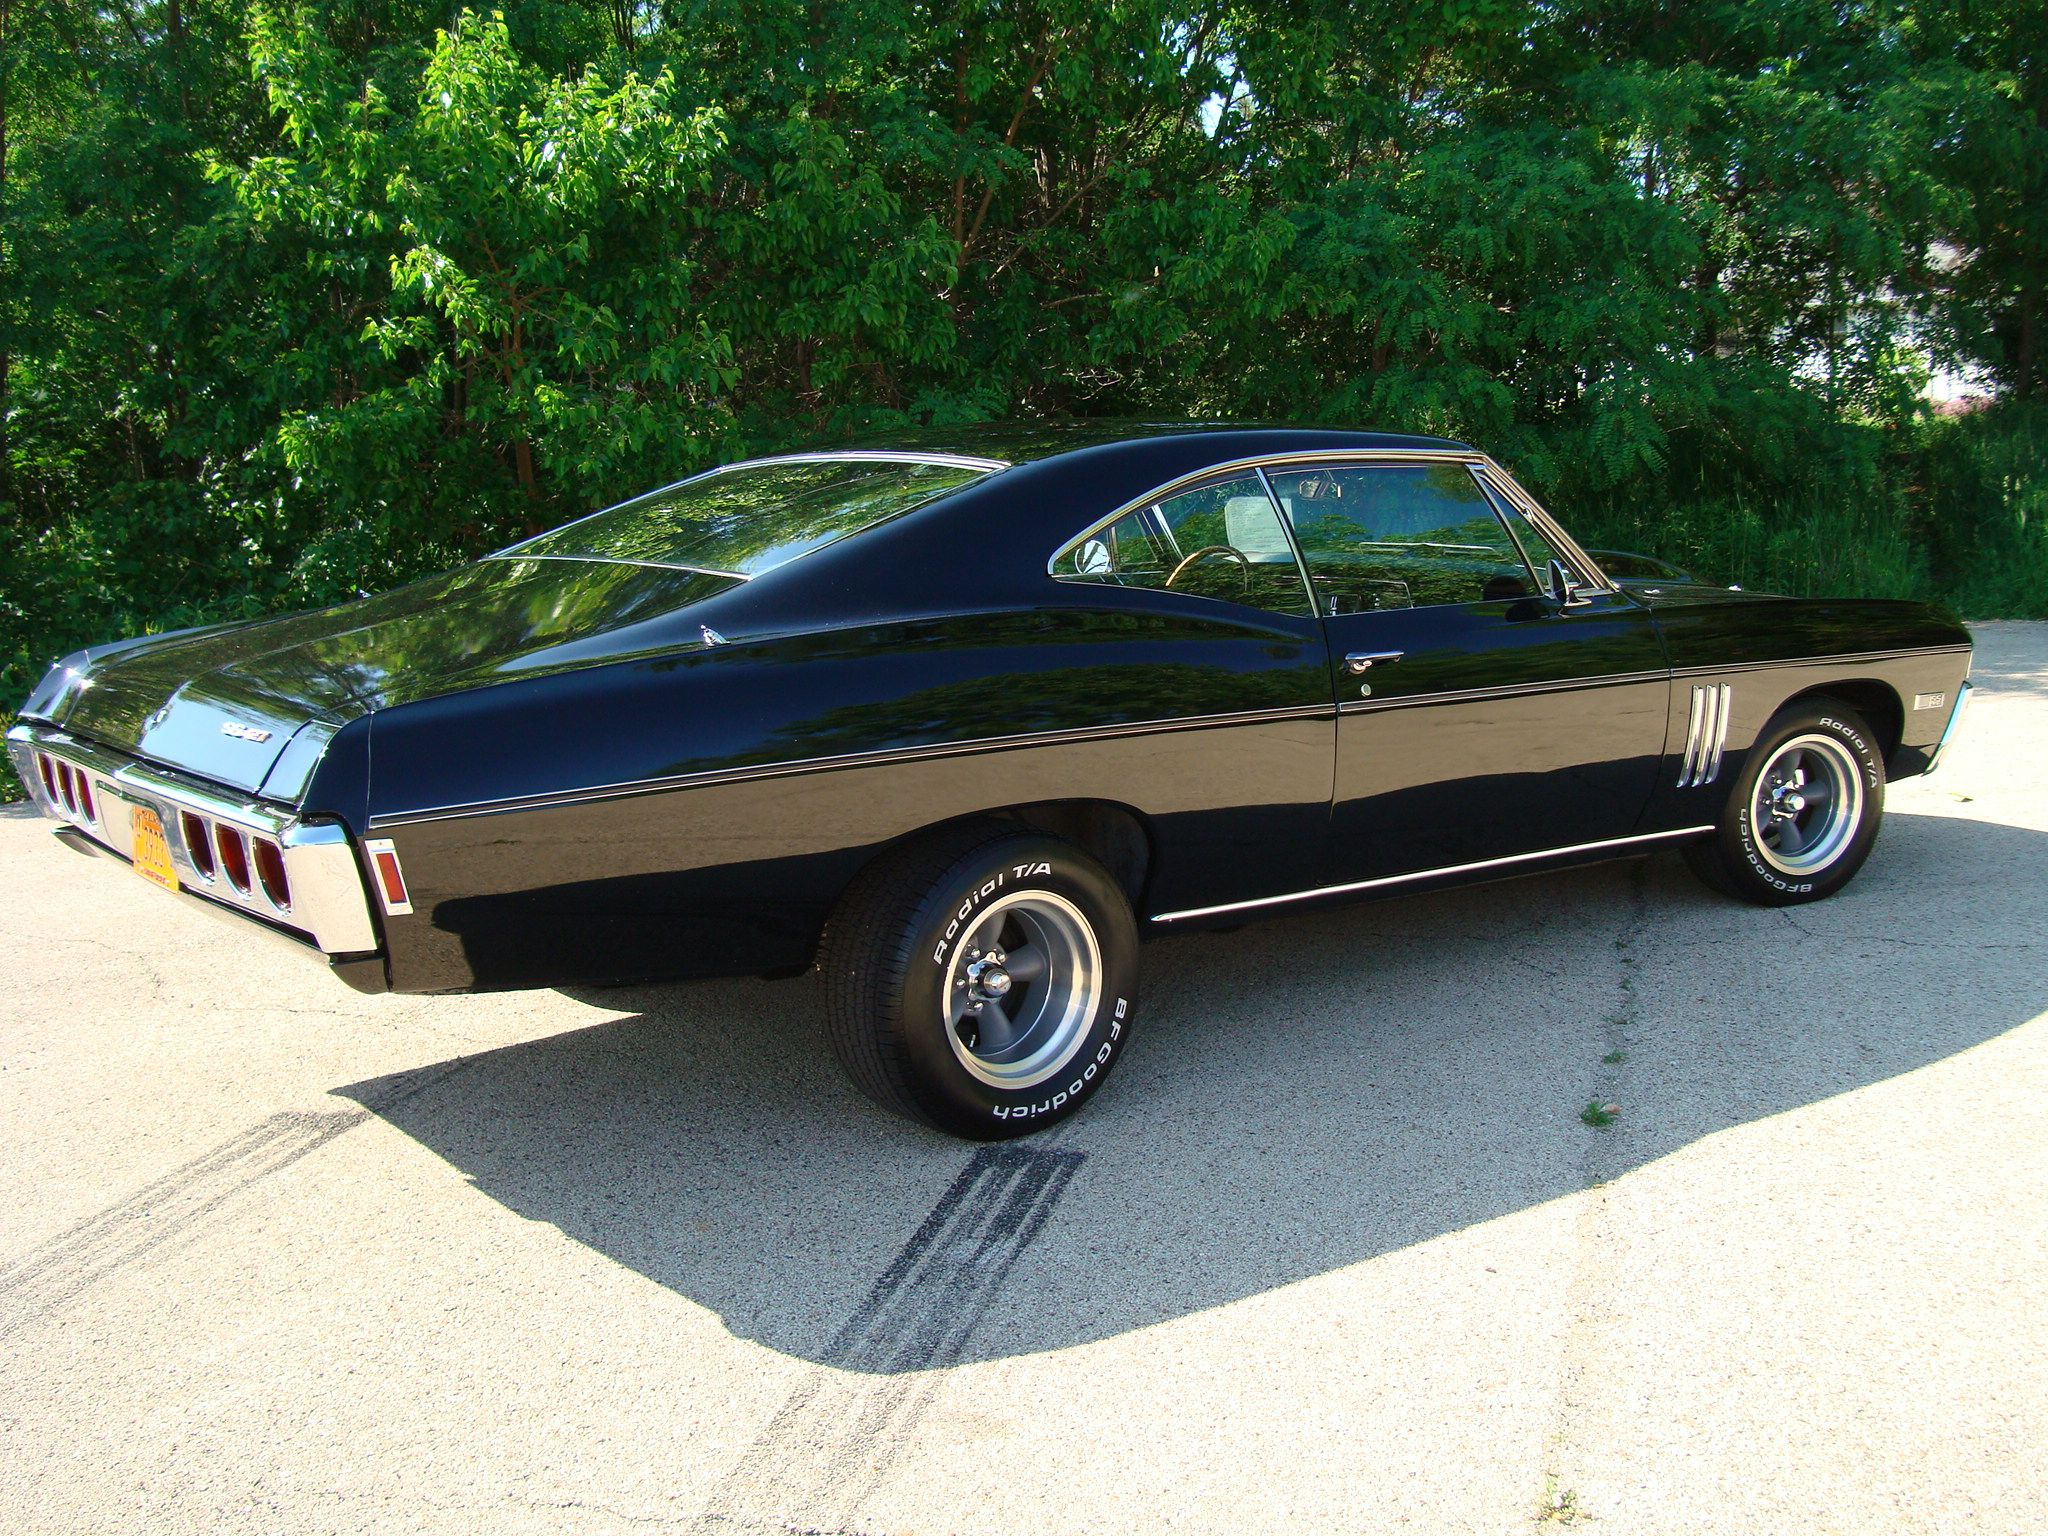 67 impala for sale craigslist autos post. Black Bedroom Furniture Sets. Home Design Ideas